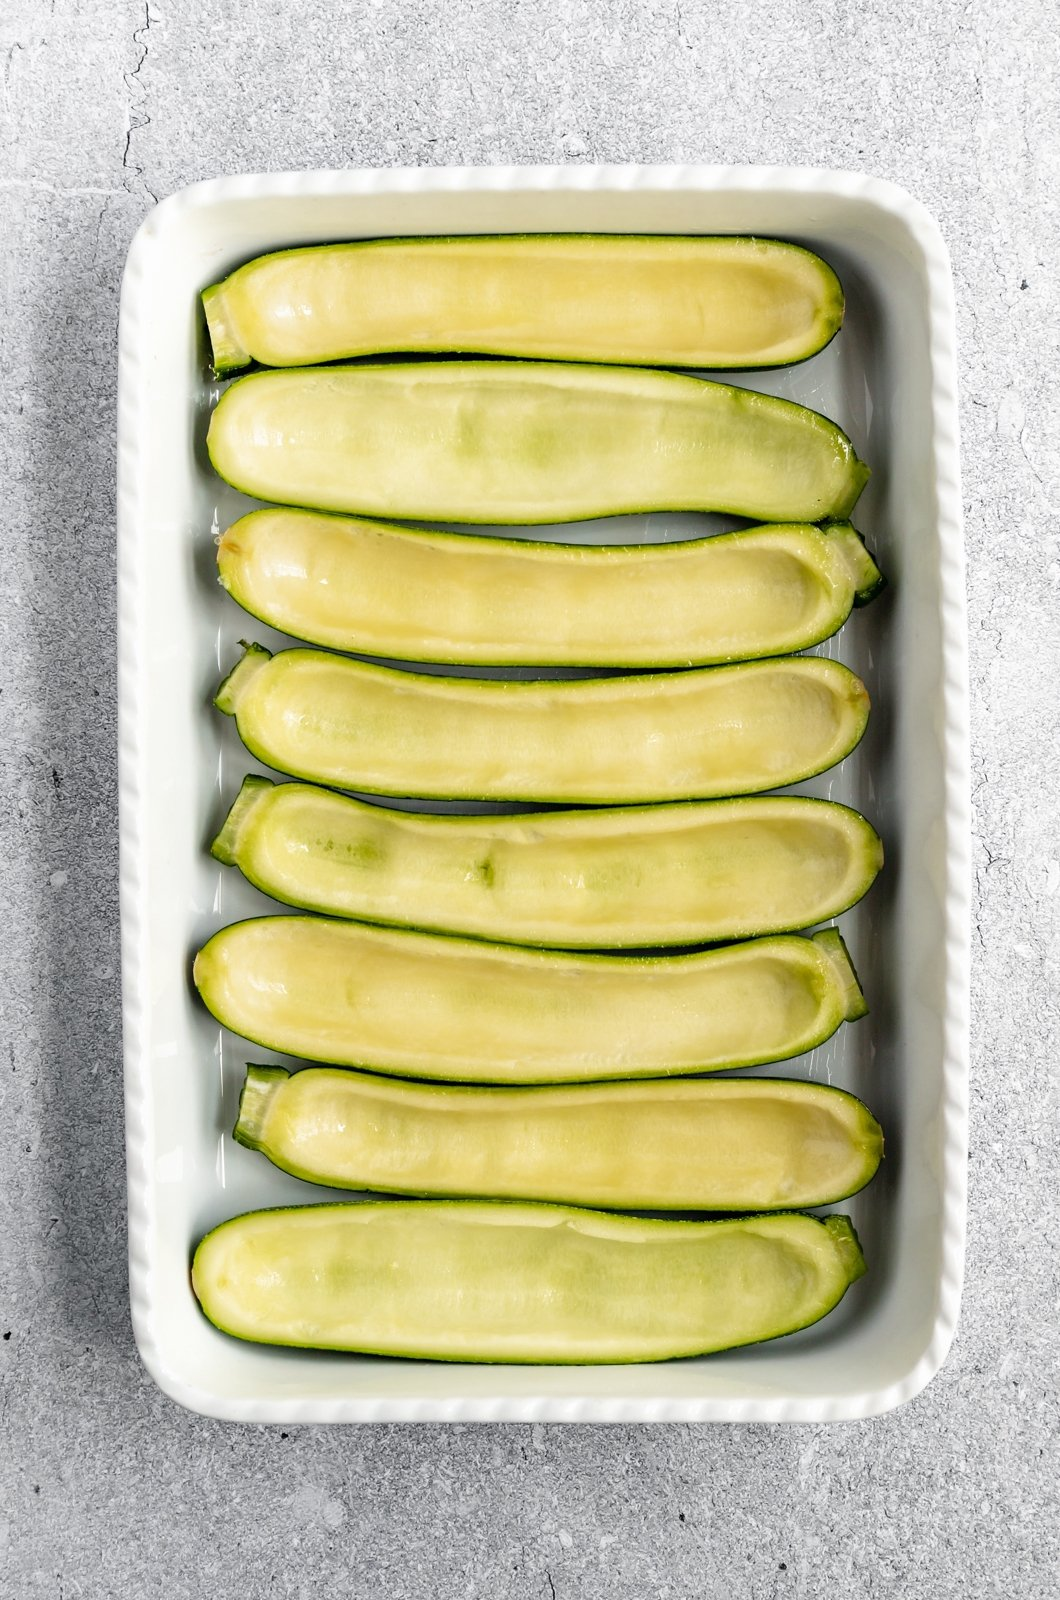 hollowed-out zucchini boats in a baking dish